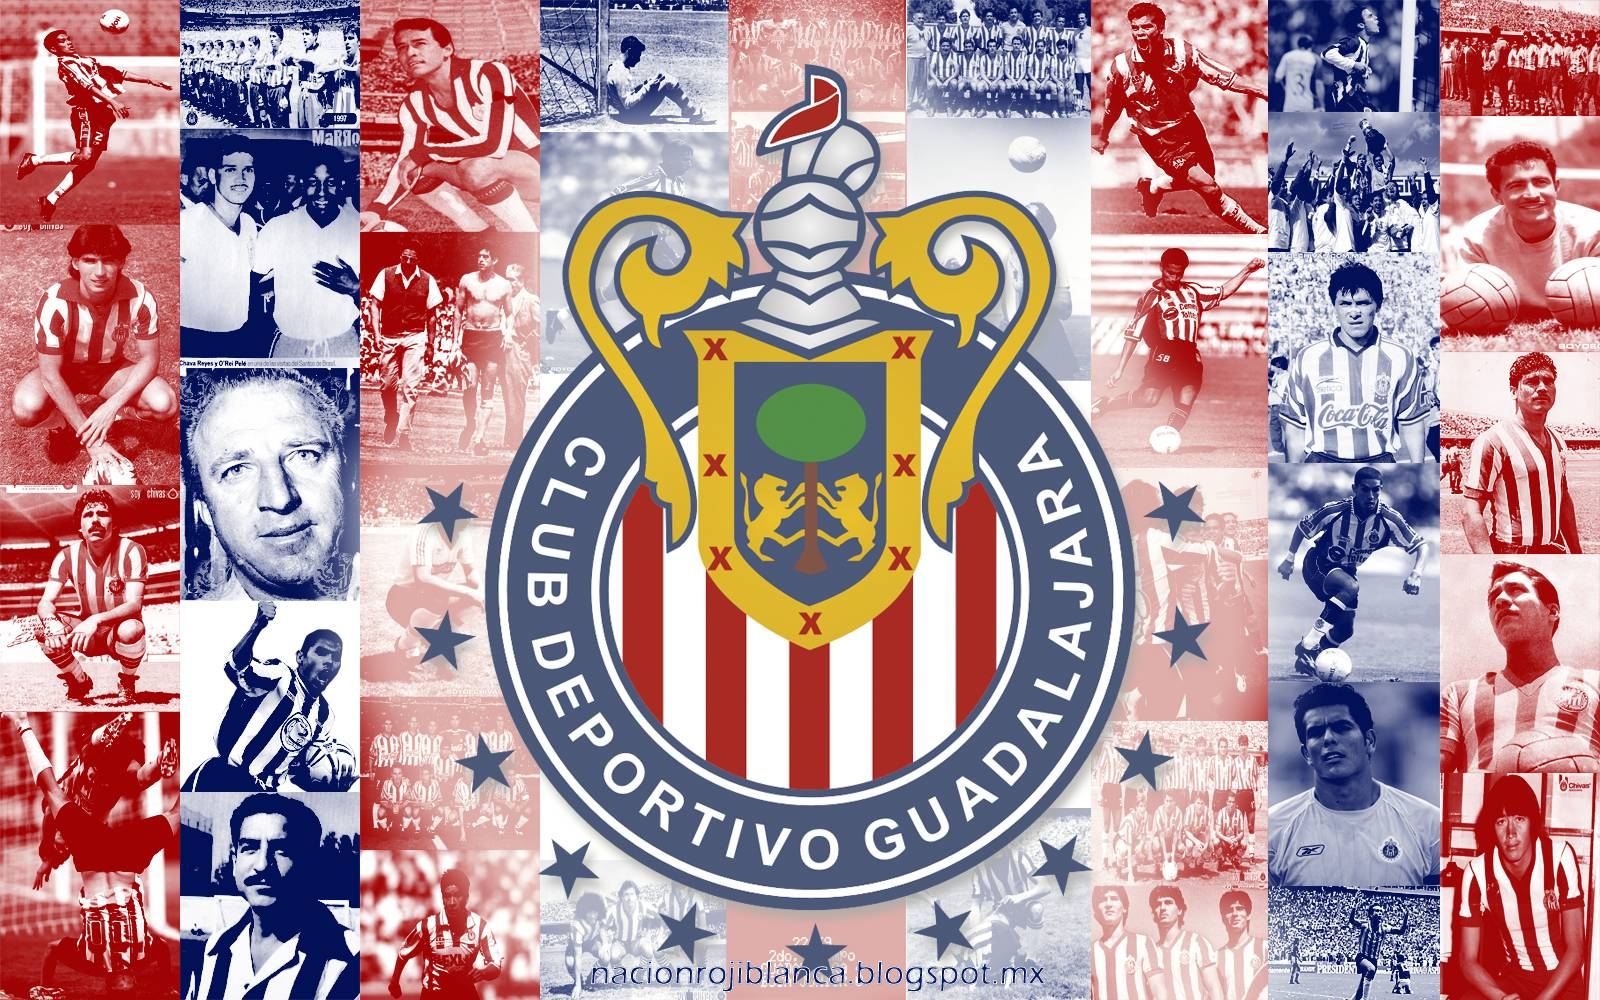 1600x1000 - C.D. Guadalajara Wallpapers 9